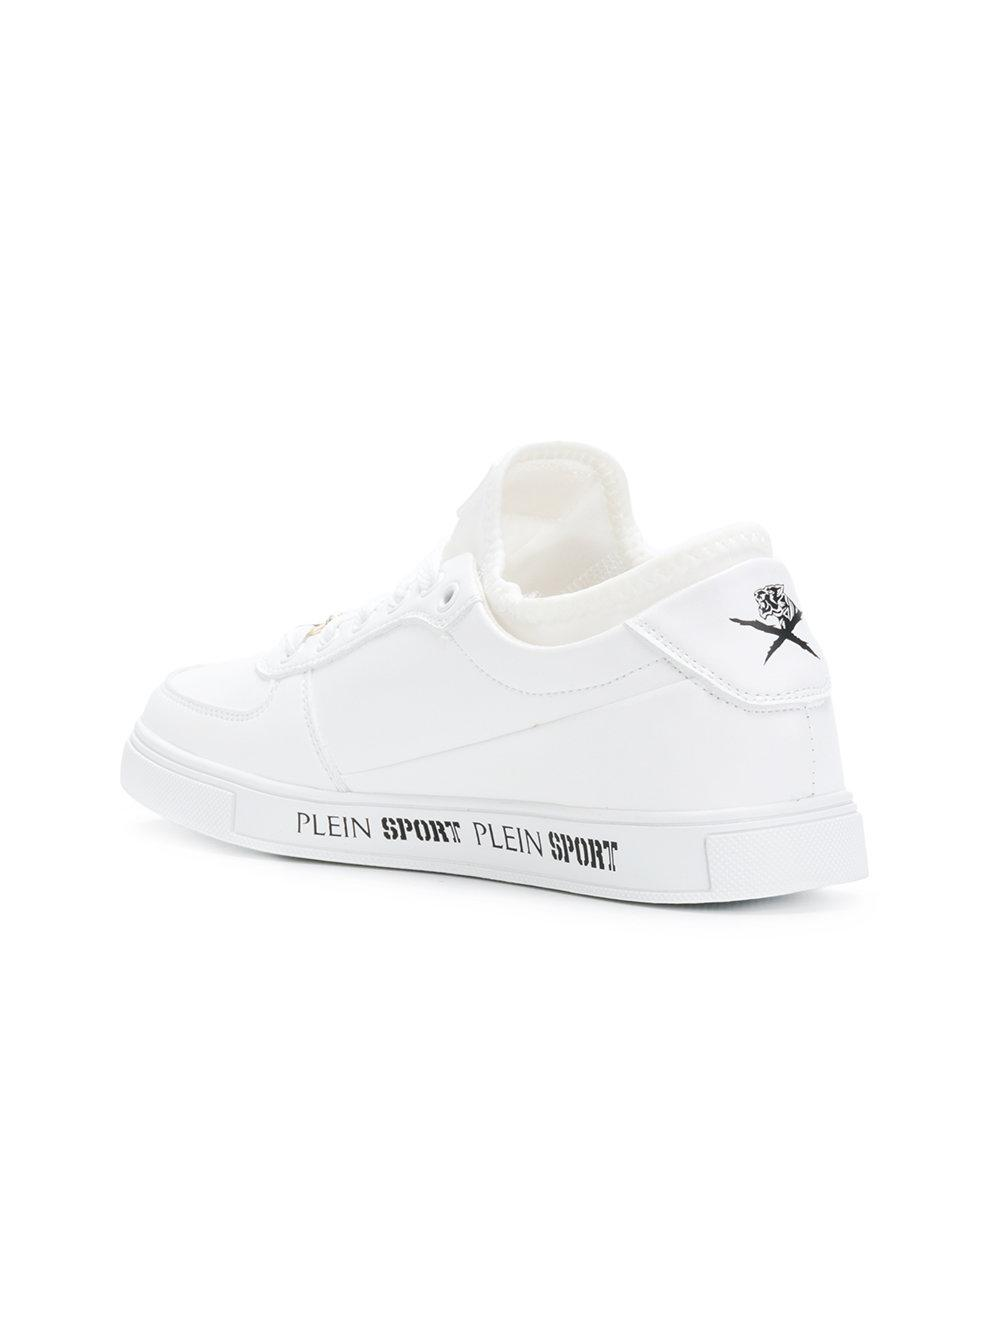 Philipp Plein Leather Low Top Sneakers in White